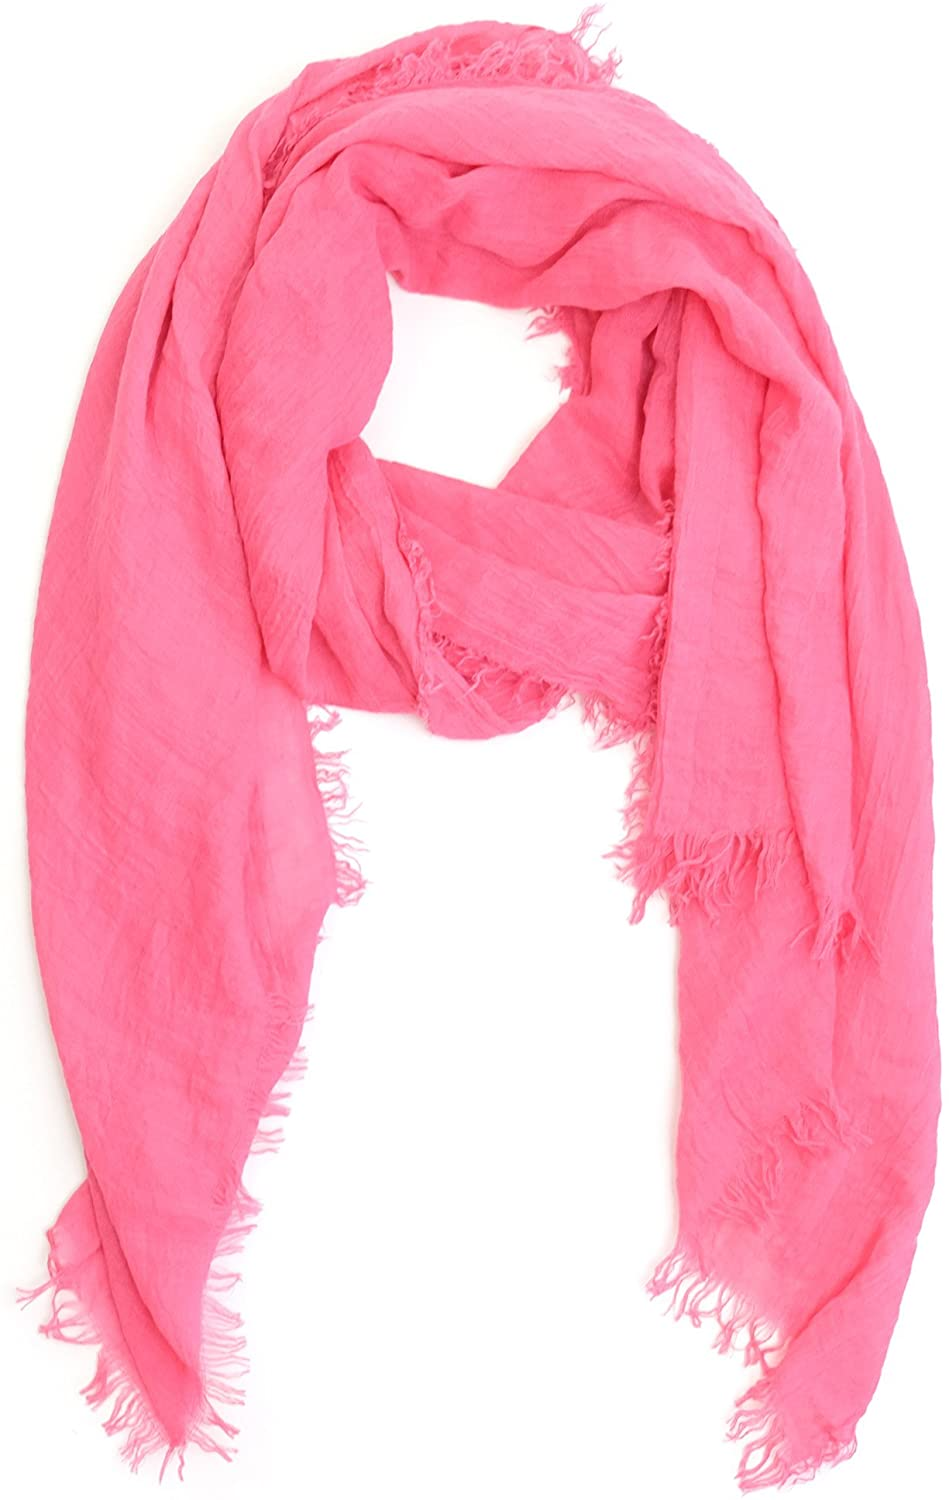 Scarfs for Women Fashion Lightweight Fall Winter Solid Colors Wrap Shawl